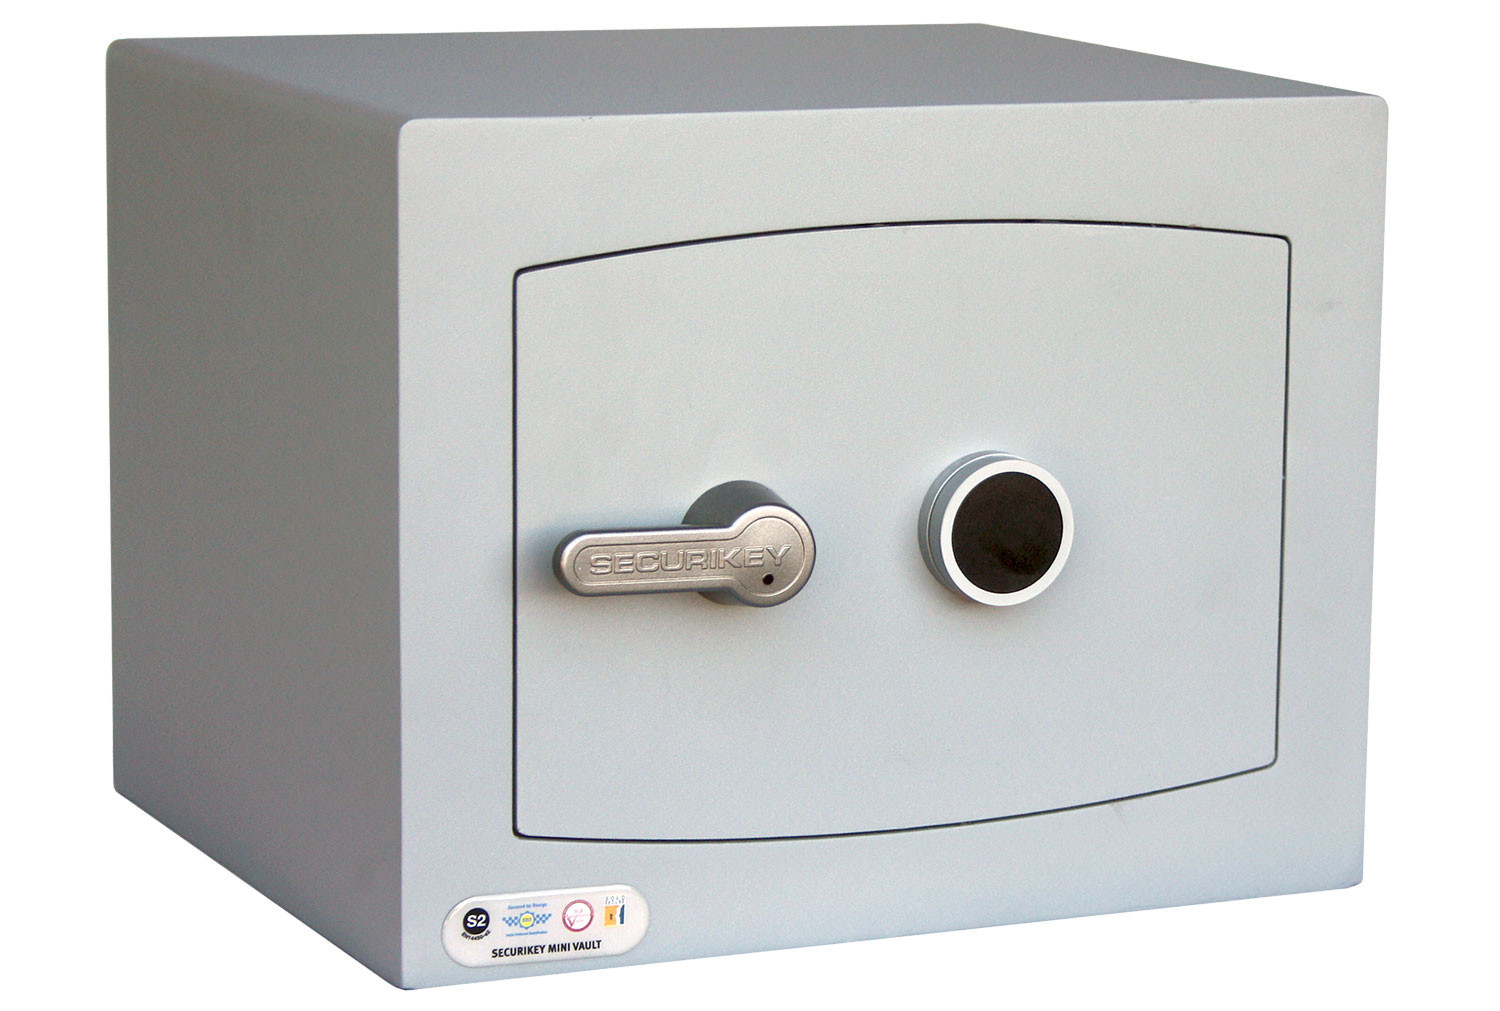 Securikey Mini Vault Silver Cash Safe Size 1 With Key Lock (26ltrs)